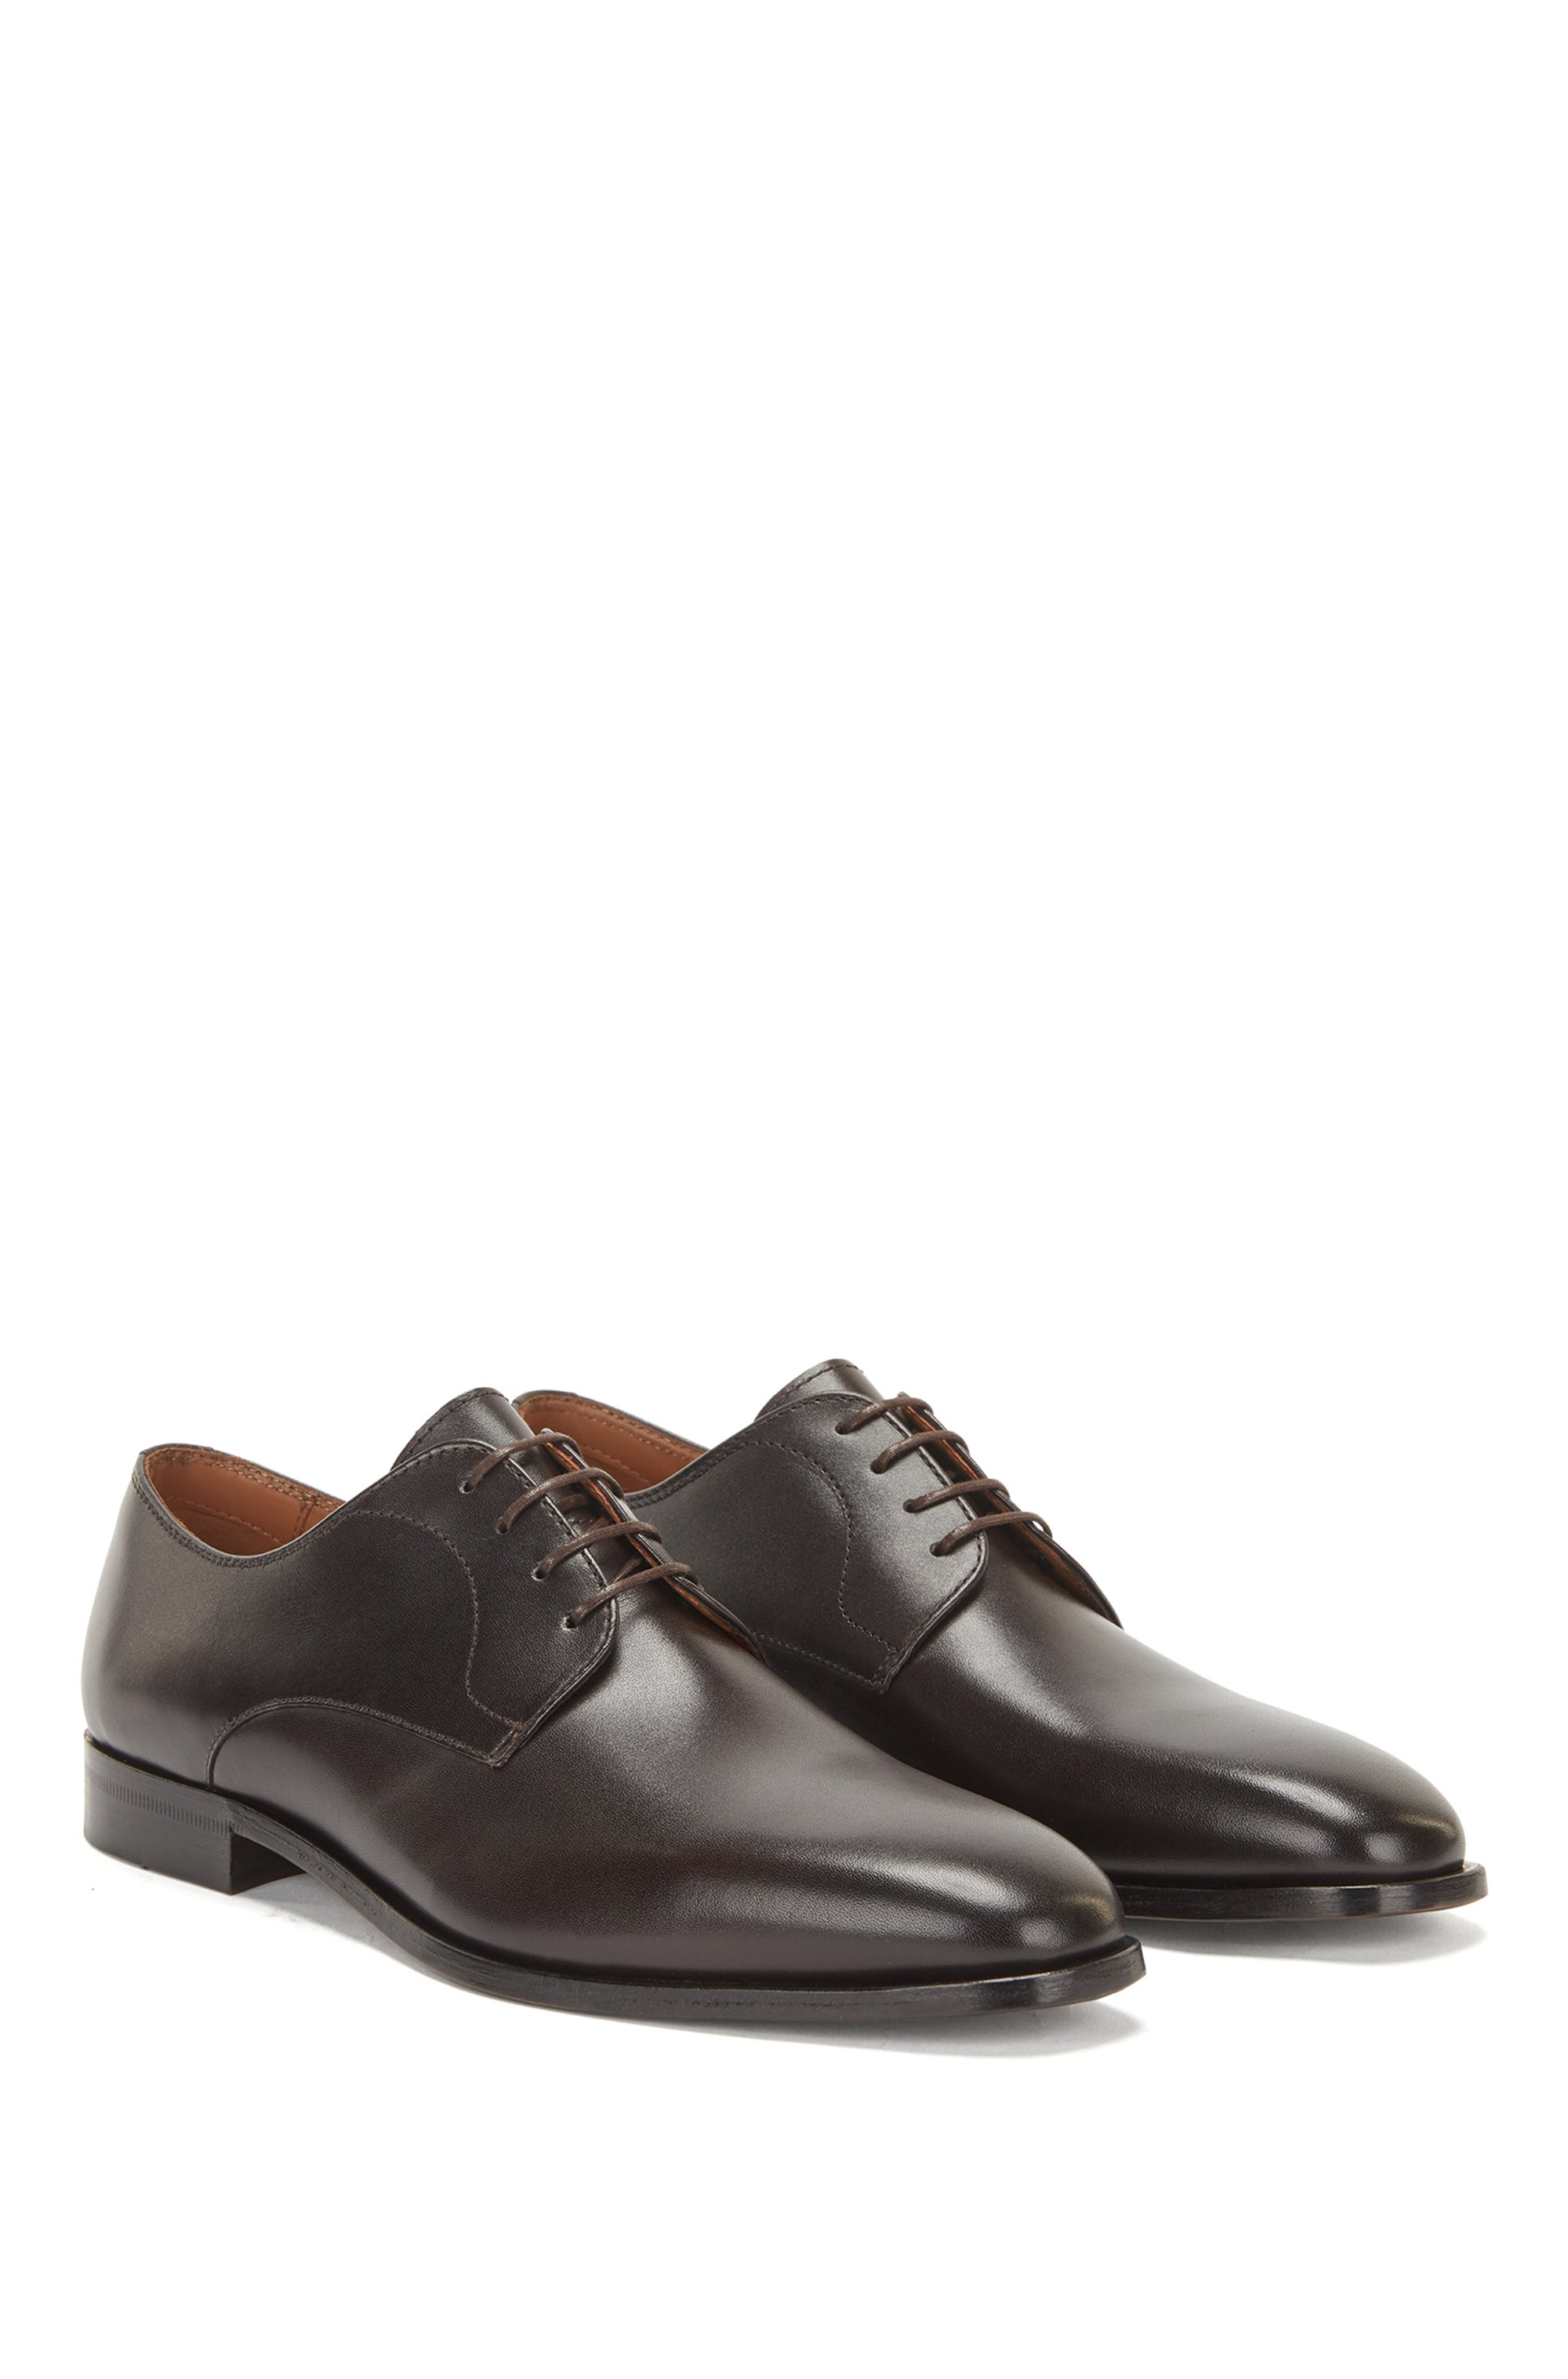 Derby shoes in polished leather with stitching details